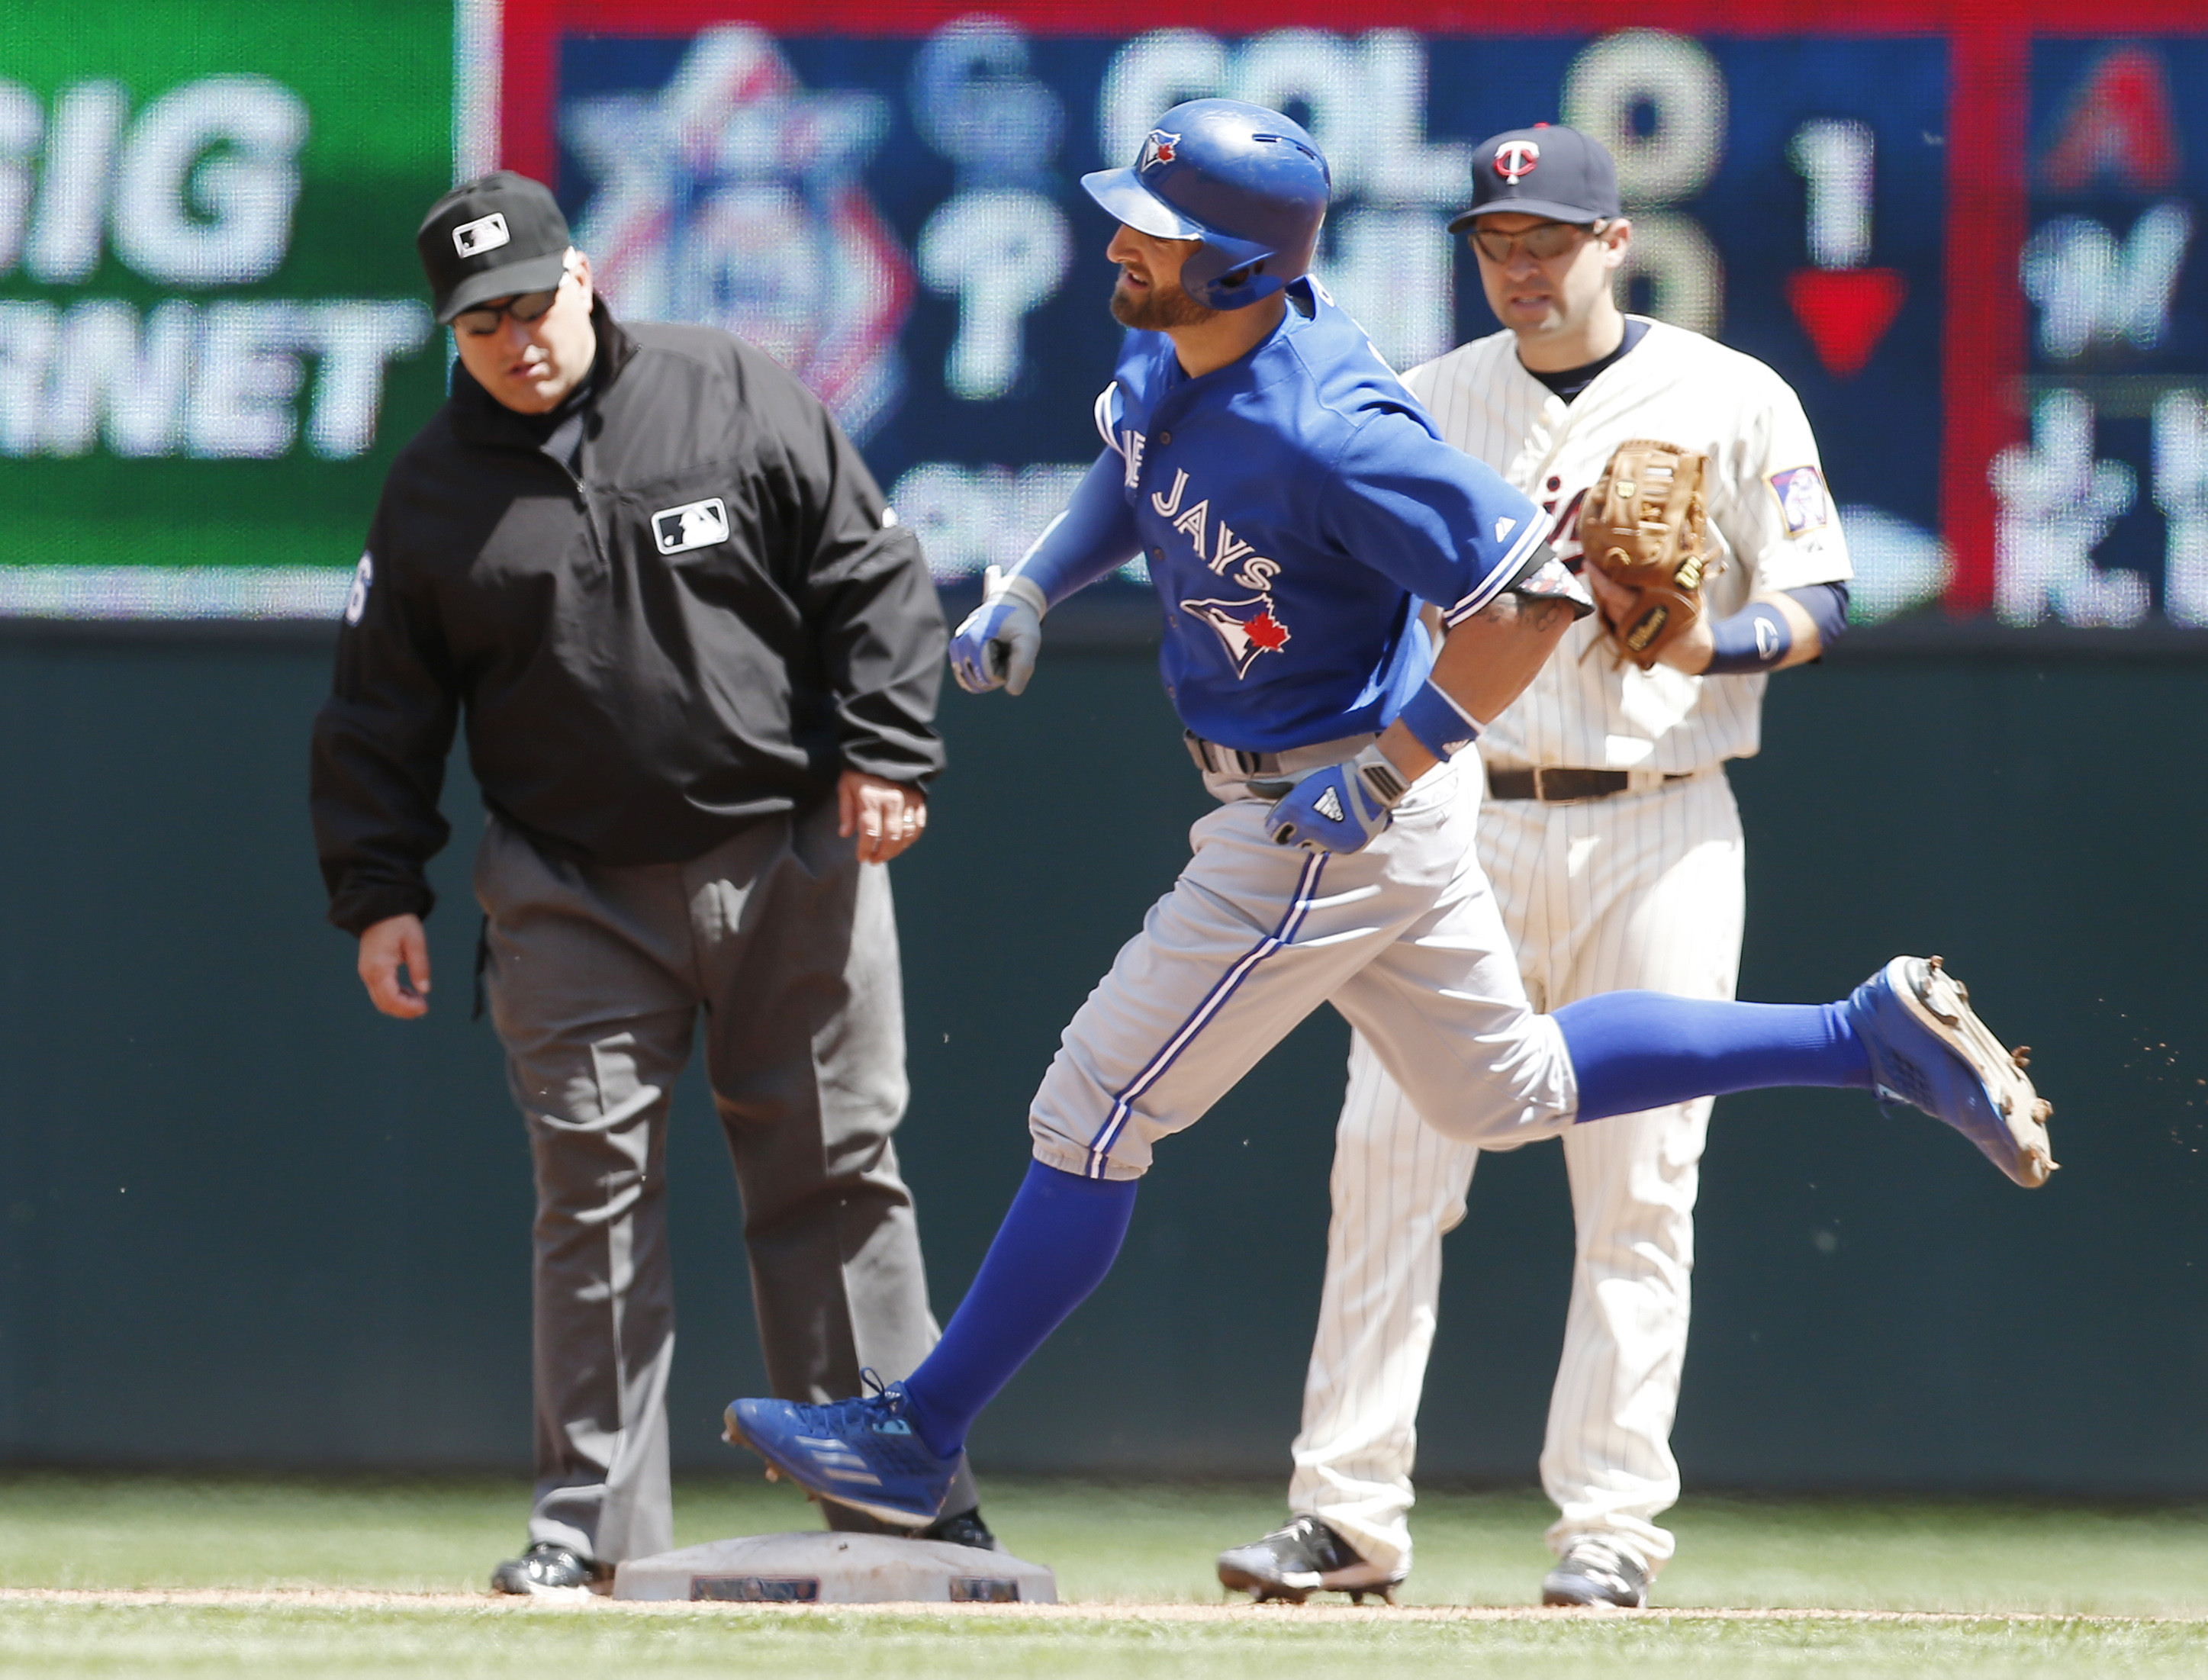 Toronto Blue Jays' Kevin Pillar, center, runs past Minnesota Twins second baseman Brian Dozier and second base umpire Eric Cooper, left, as he rounds the bases after hitting a solo home run off Twins pitcher Kyle Gibson in the fourth inning of a baseball